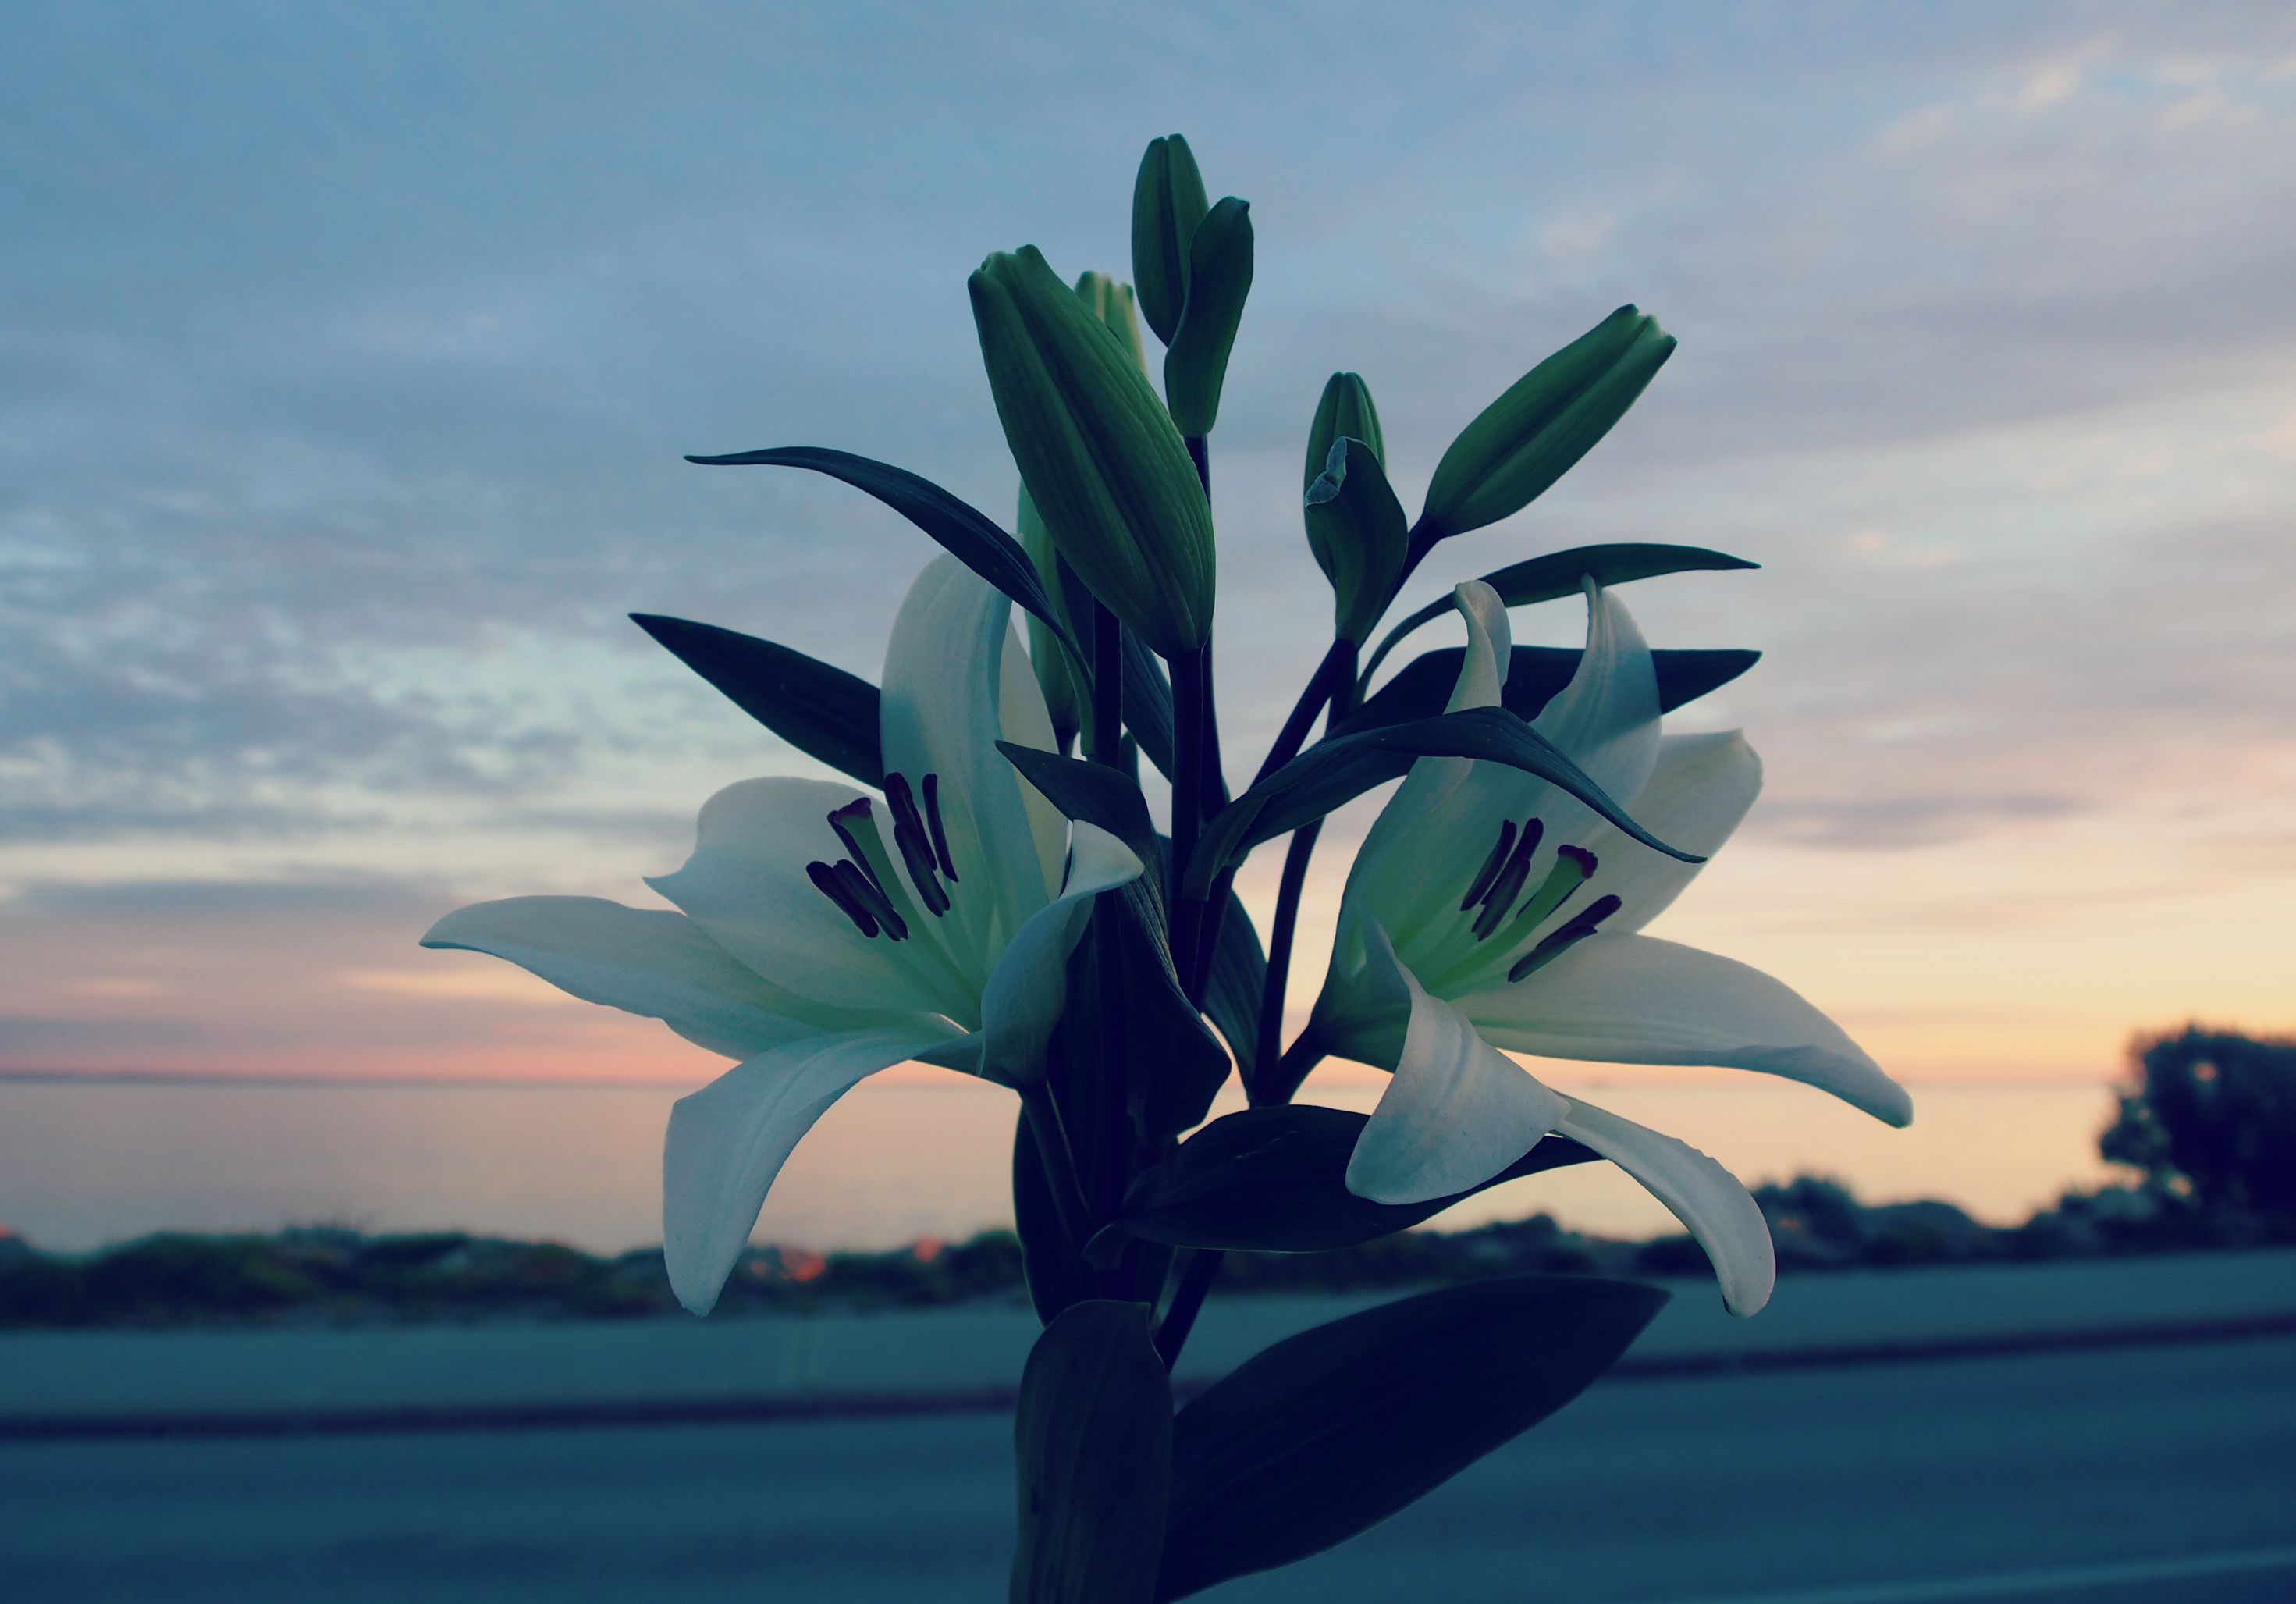 Flowers, beach, inspiration